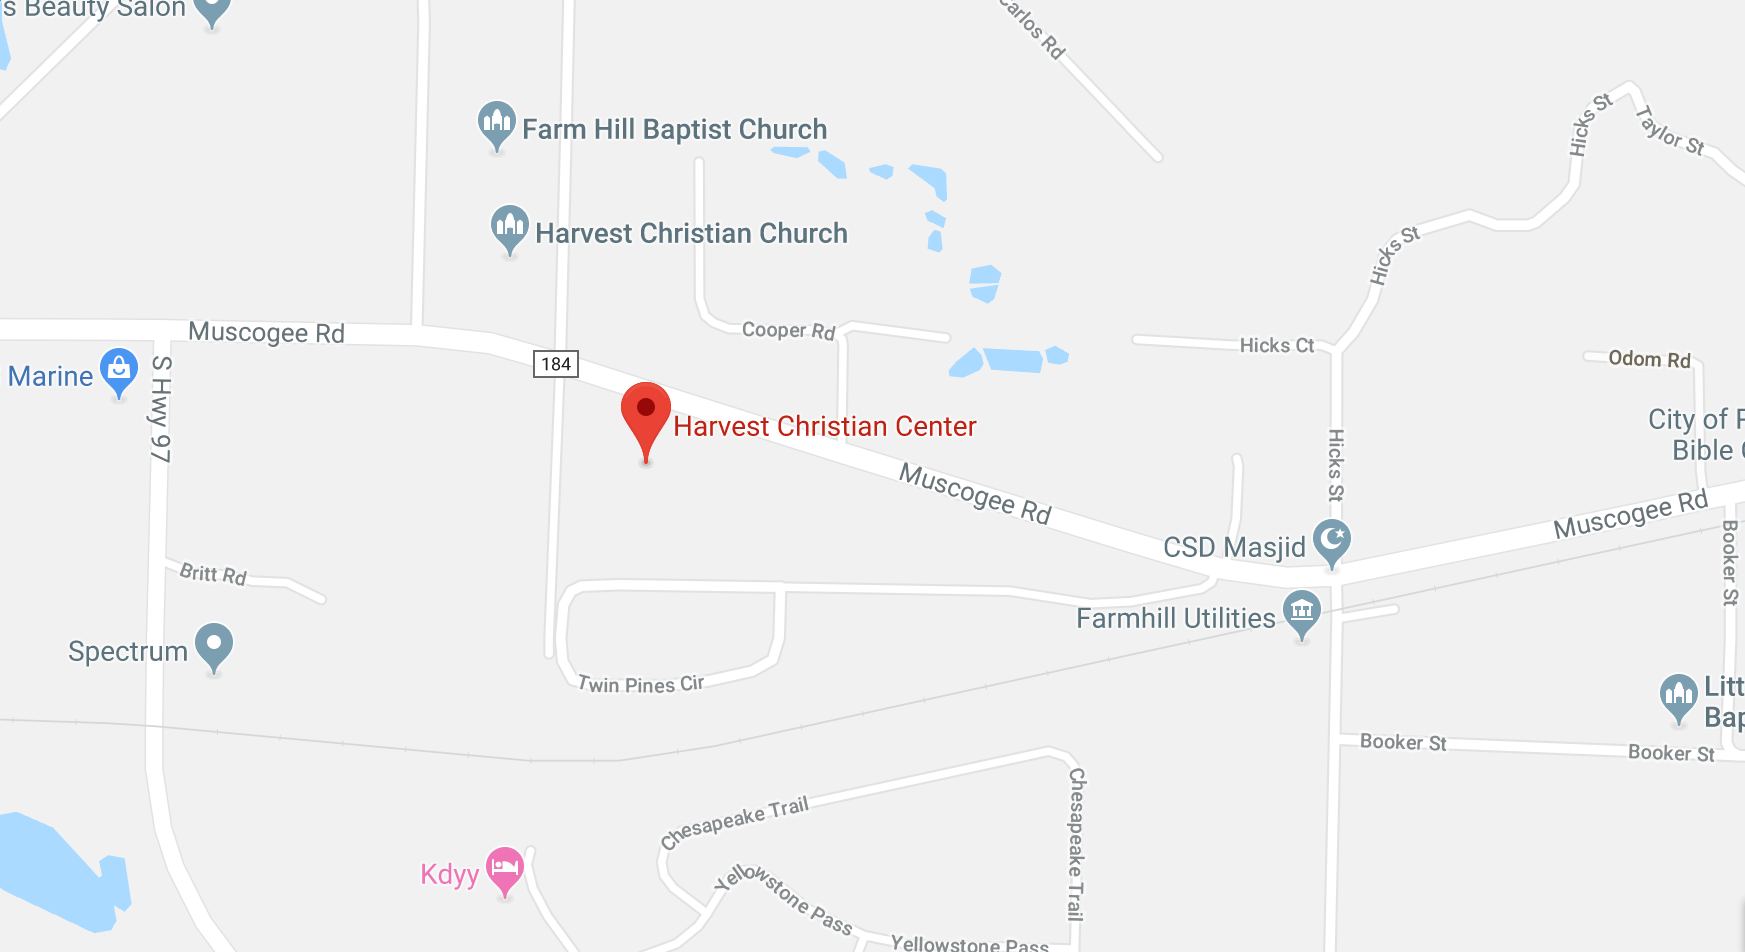 map of harvest Christian center in florida